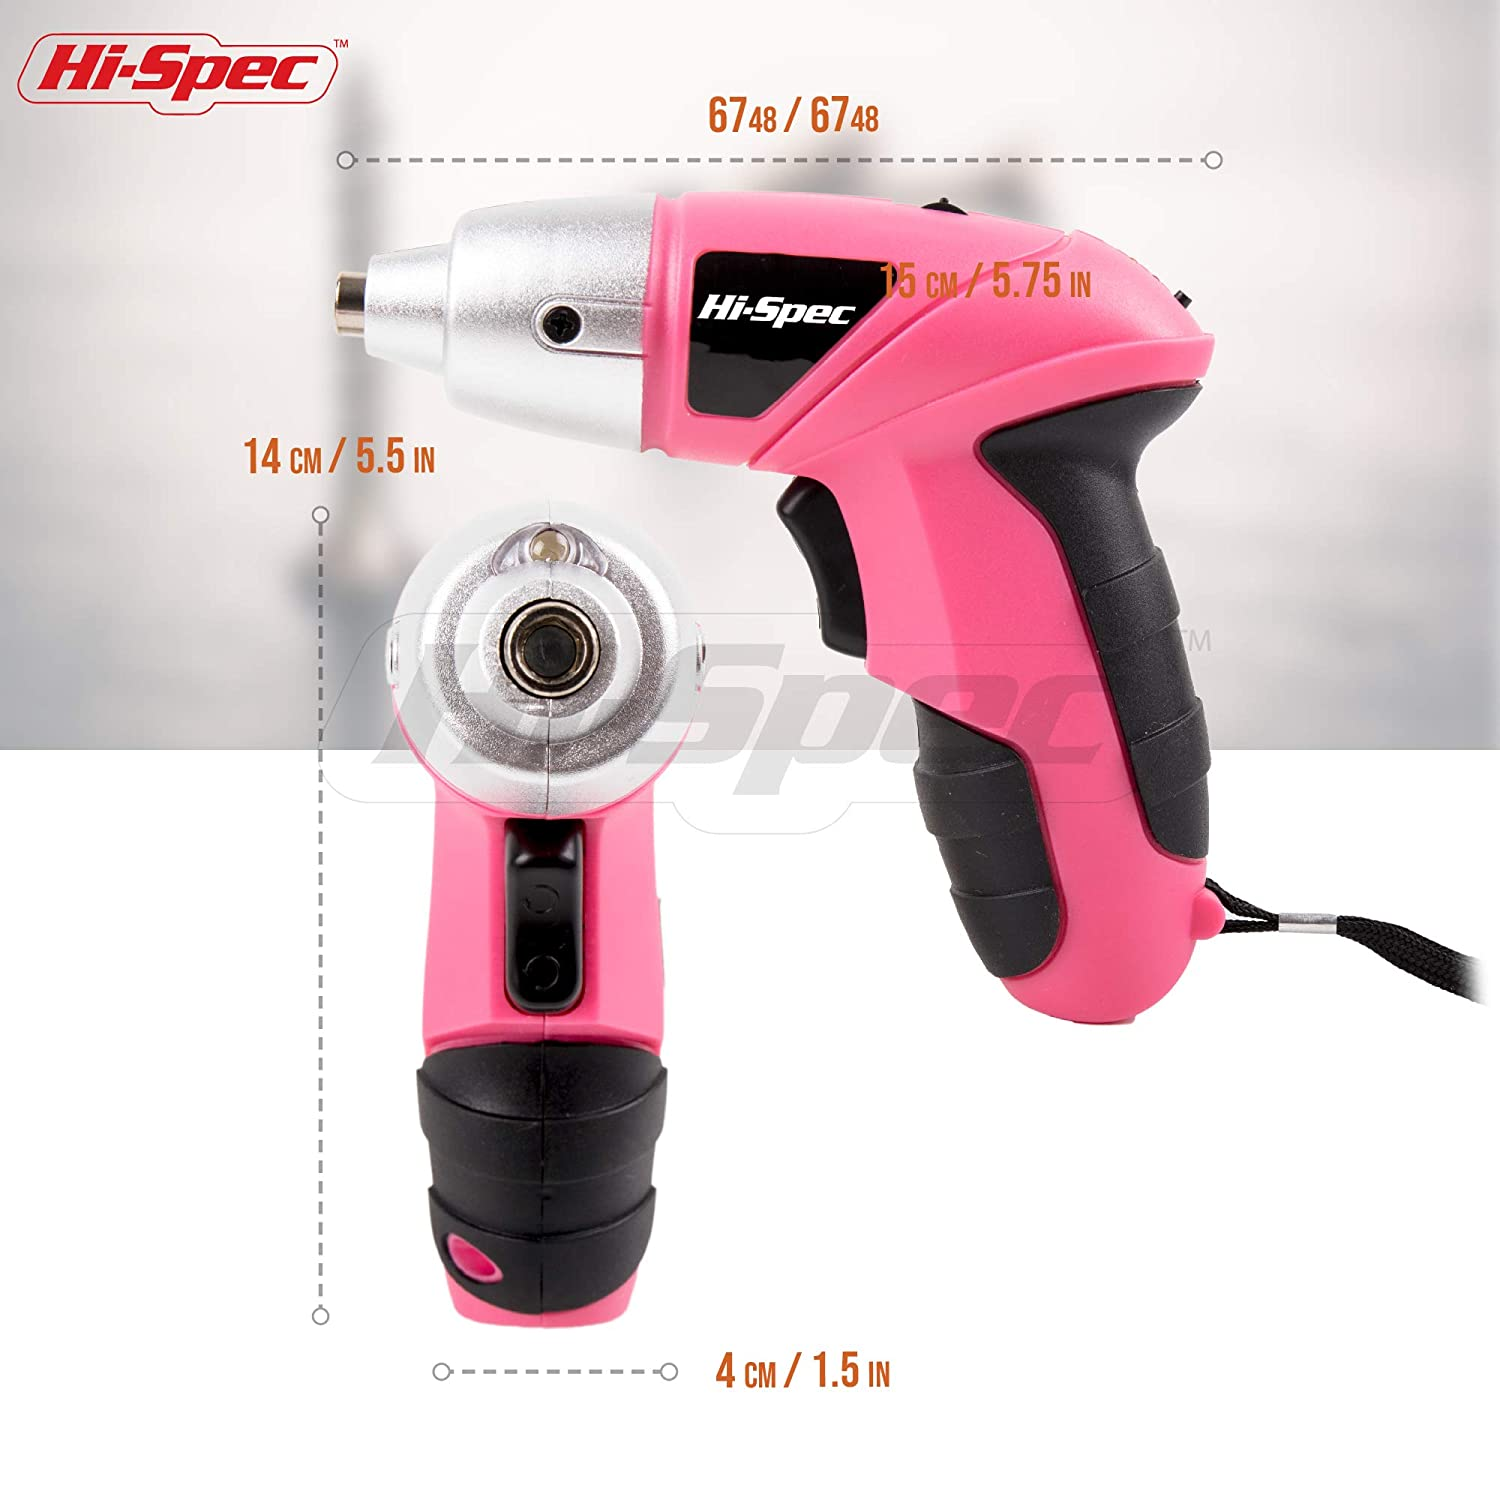 Great Gift Idea Pink Power Tool for Ladies Hi-Spec 4.8V Electric Cordless Pink Screwdriver with Rechargeable 600mAh Ni-MH Battery /& 26 Piece Screwdriver and Wood Drill Bit Assortment for Home DIY